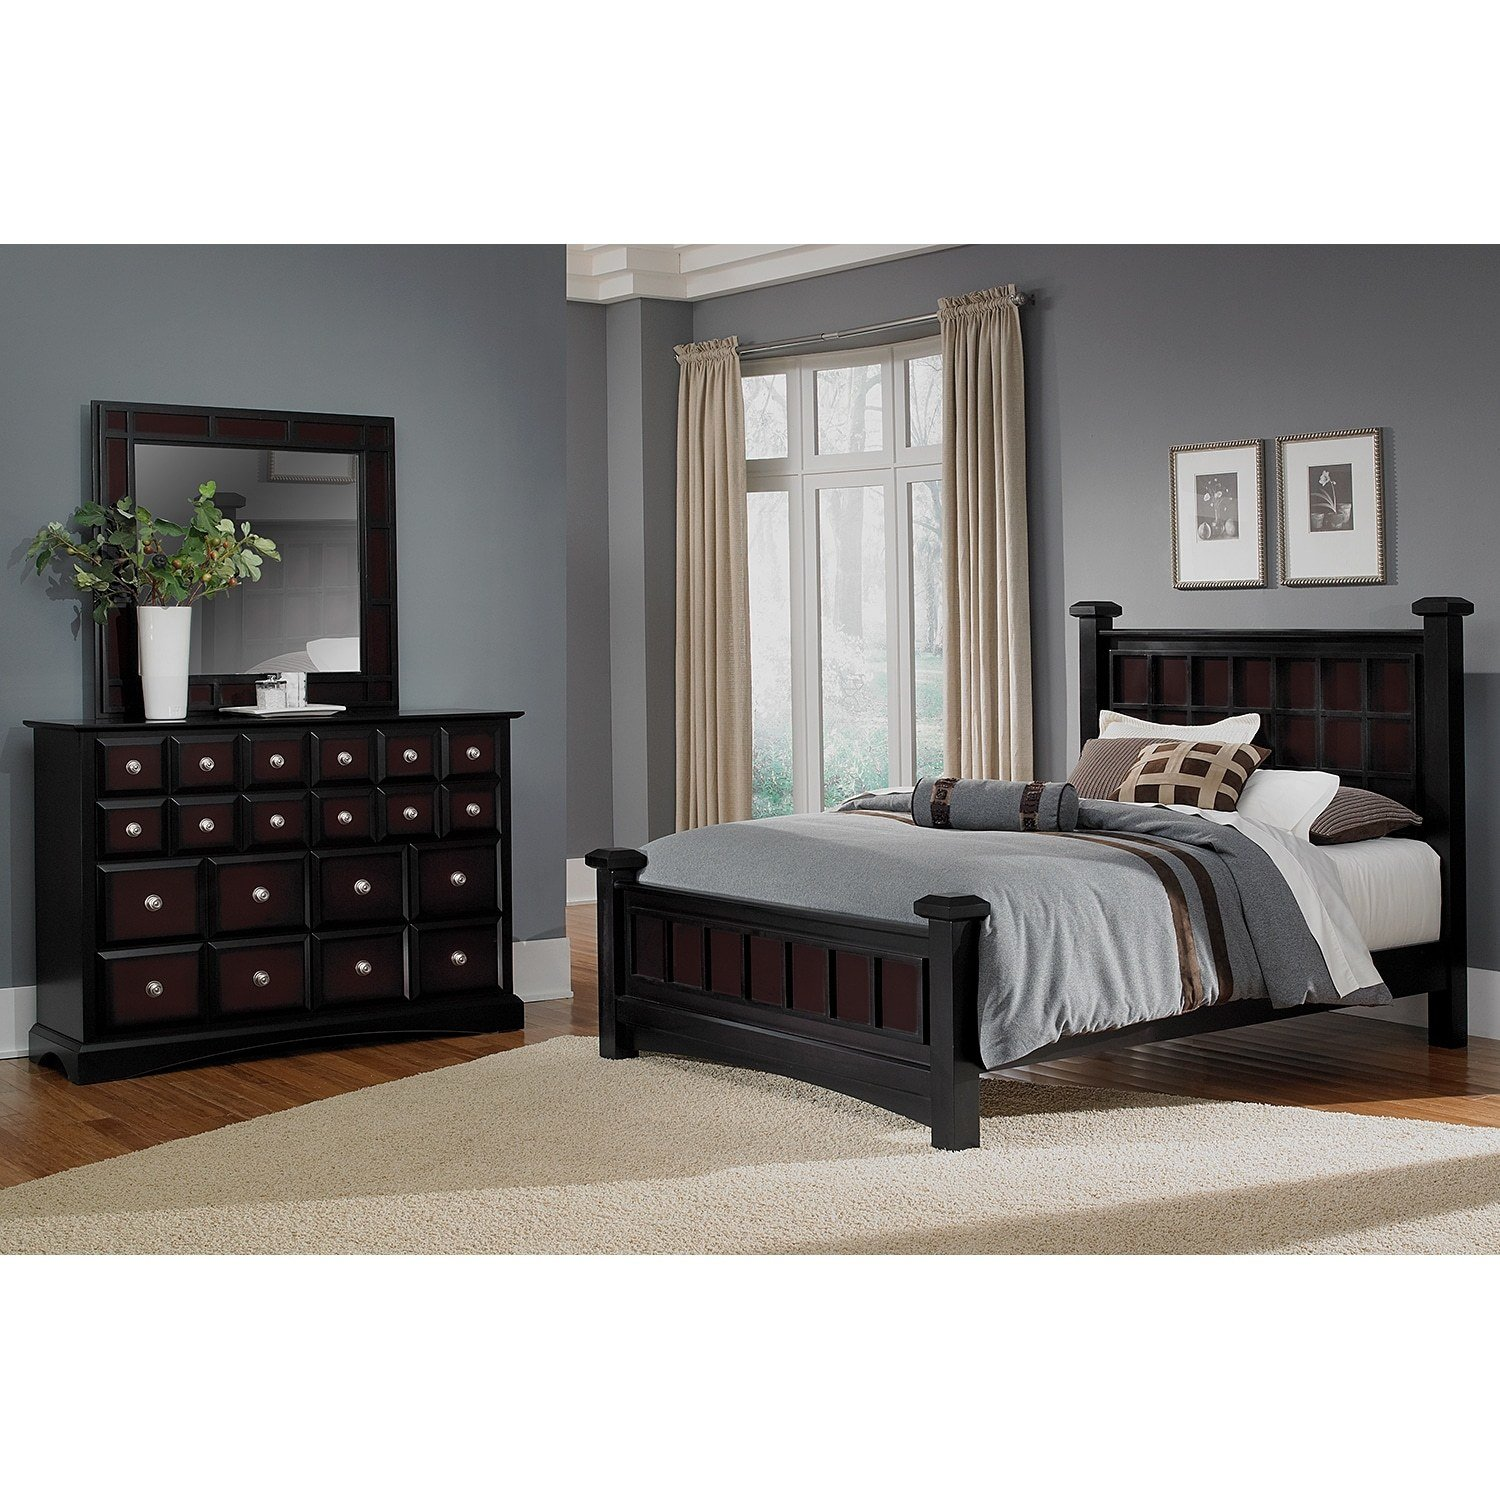 Best Winchester 5 Piece King Bedroom Set Black And Burnished With Pictures